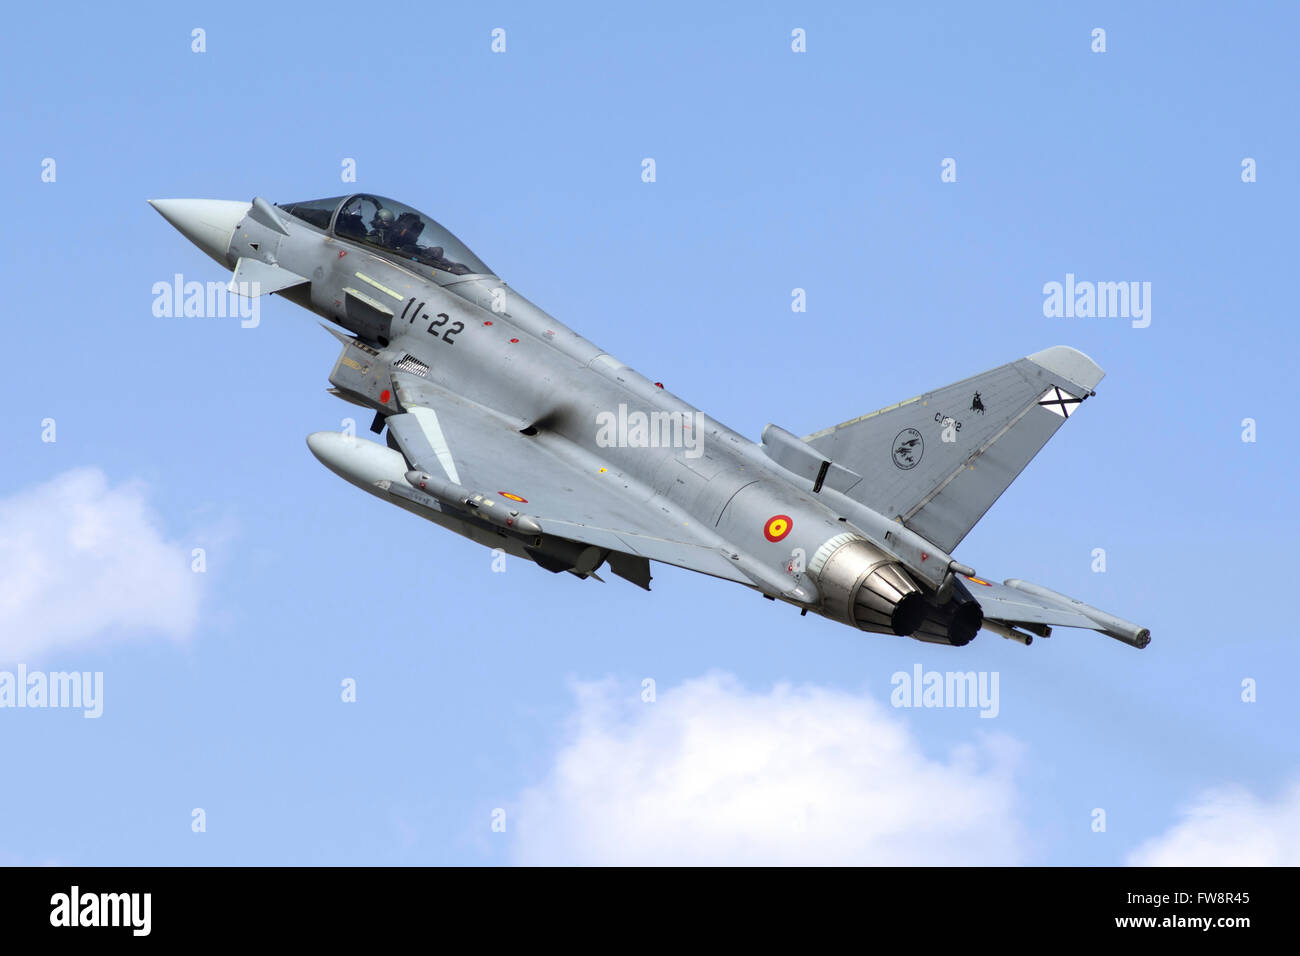 A Spanish Air Force EF-2000 Typhoon taking off from Konya during the international Exercise Anatolian Eagle 2014 Stock Photo